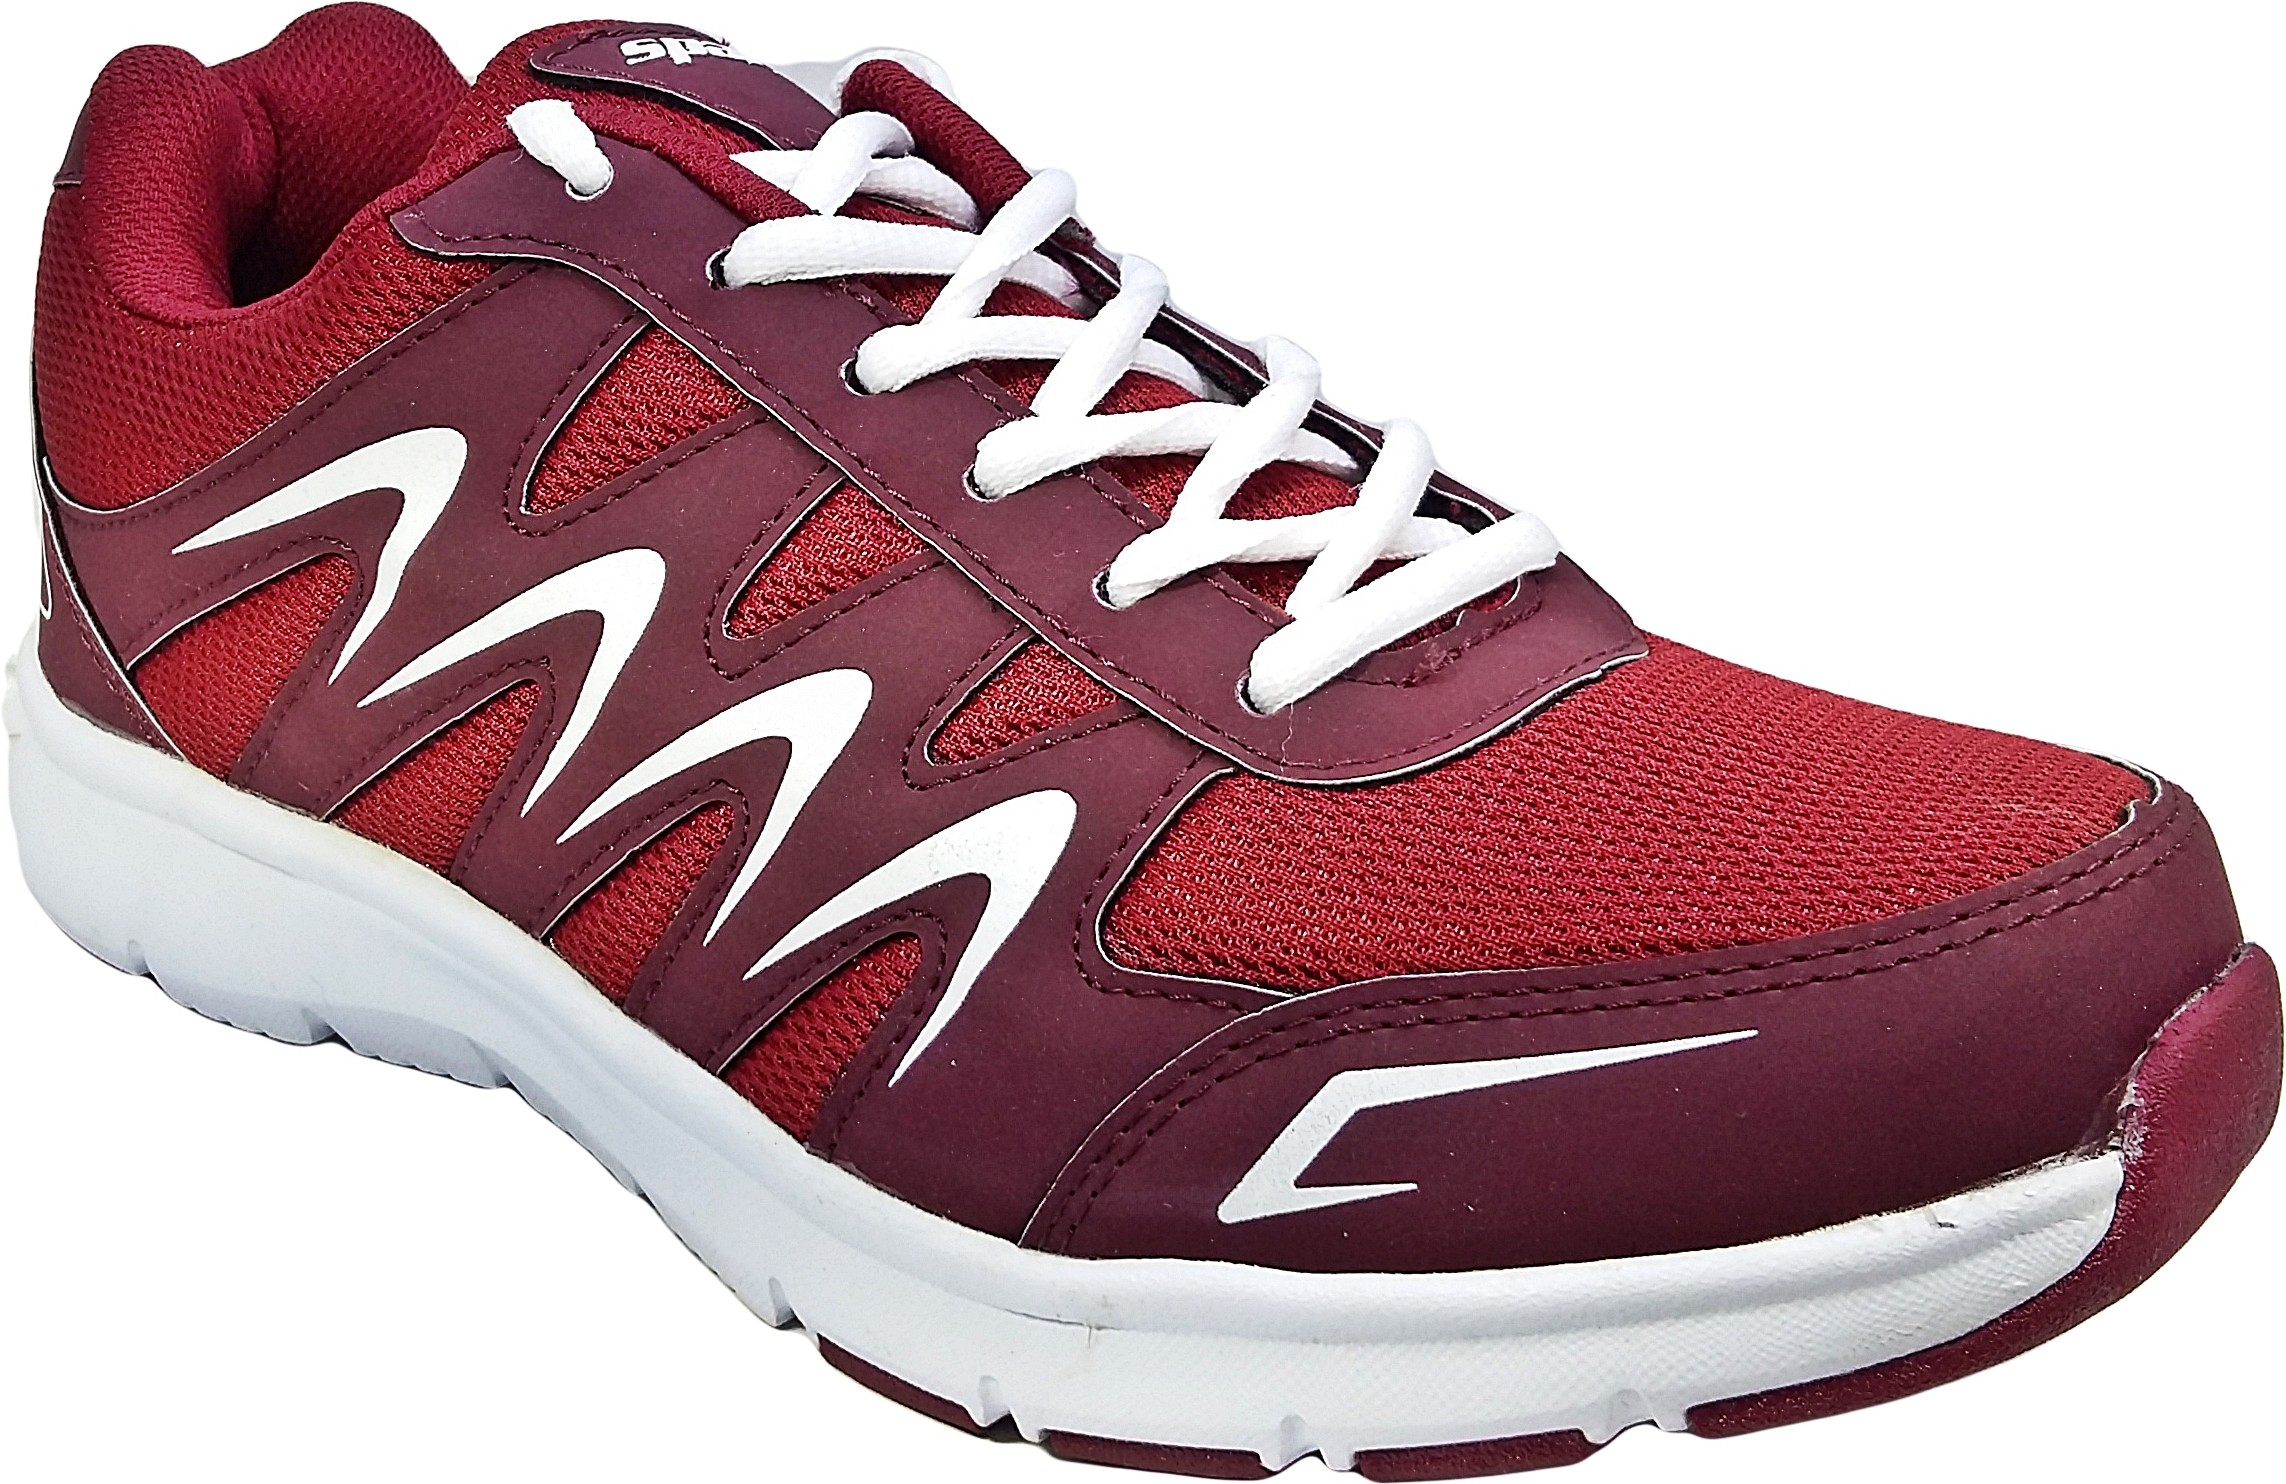 Sparx Men Red White Running Shoes(Red, White) best price on Flipkart @ Rs. 1199